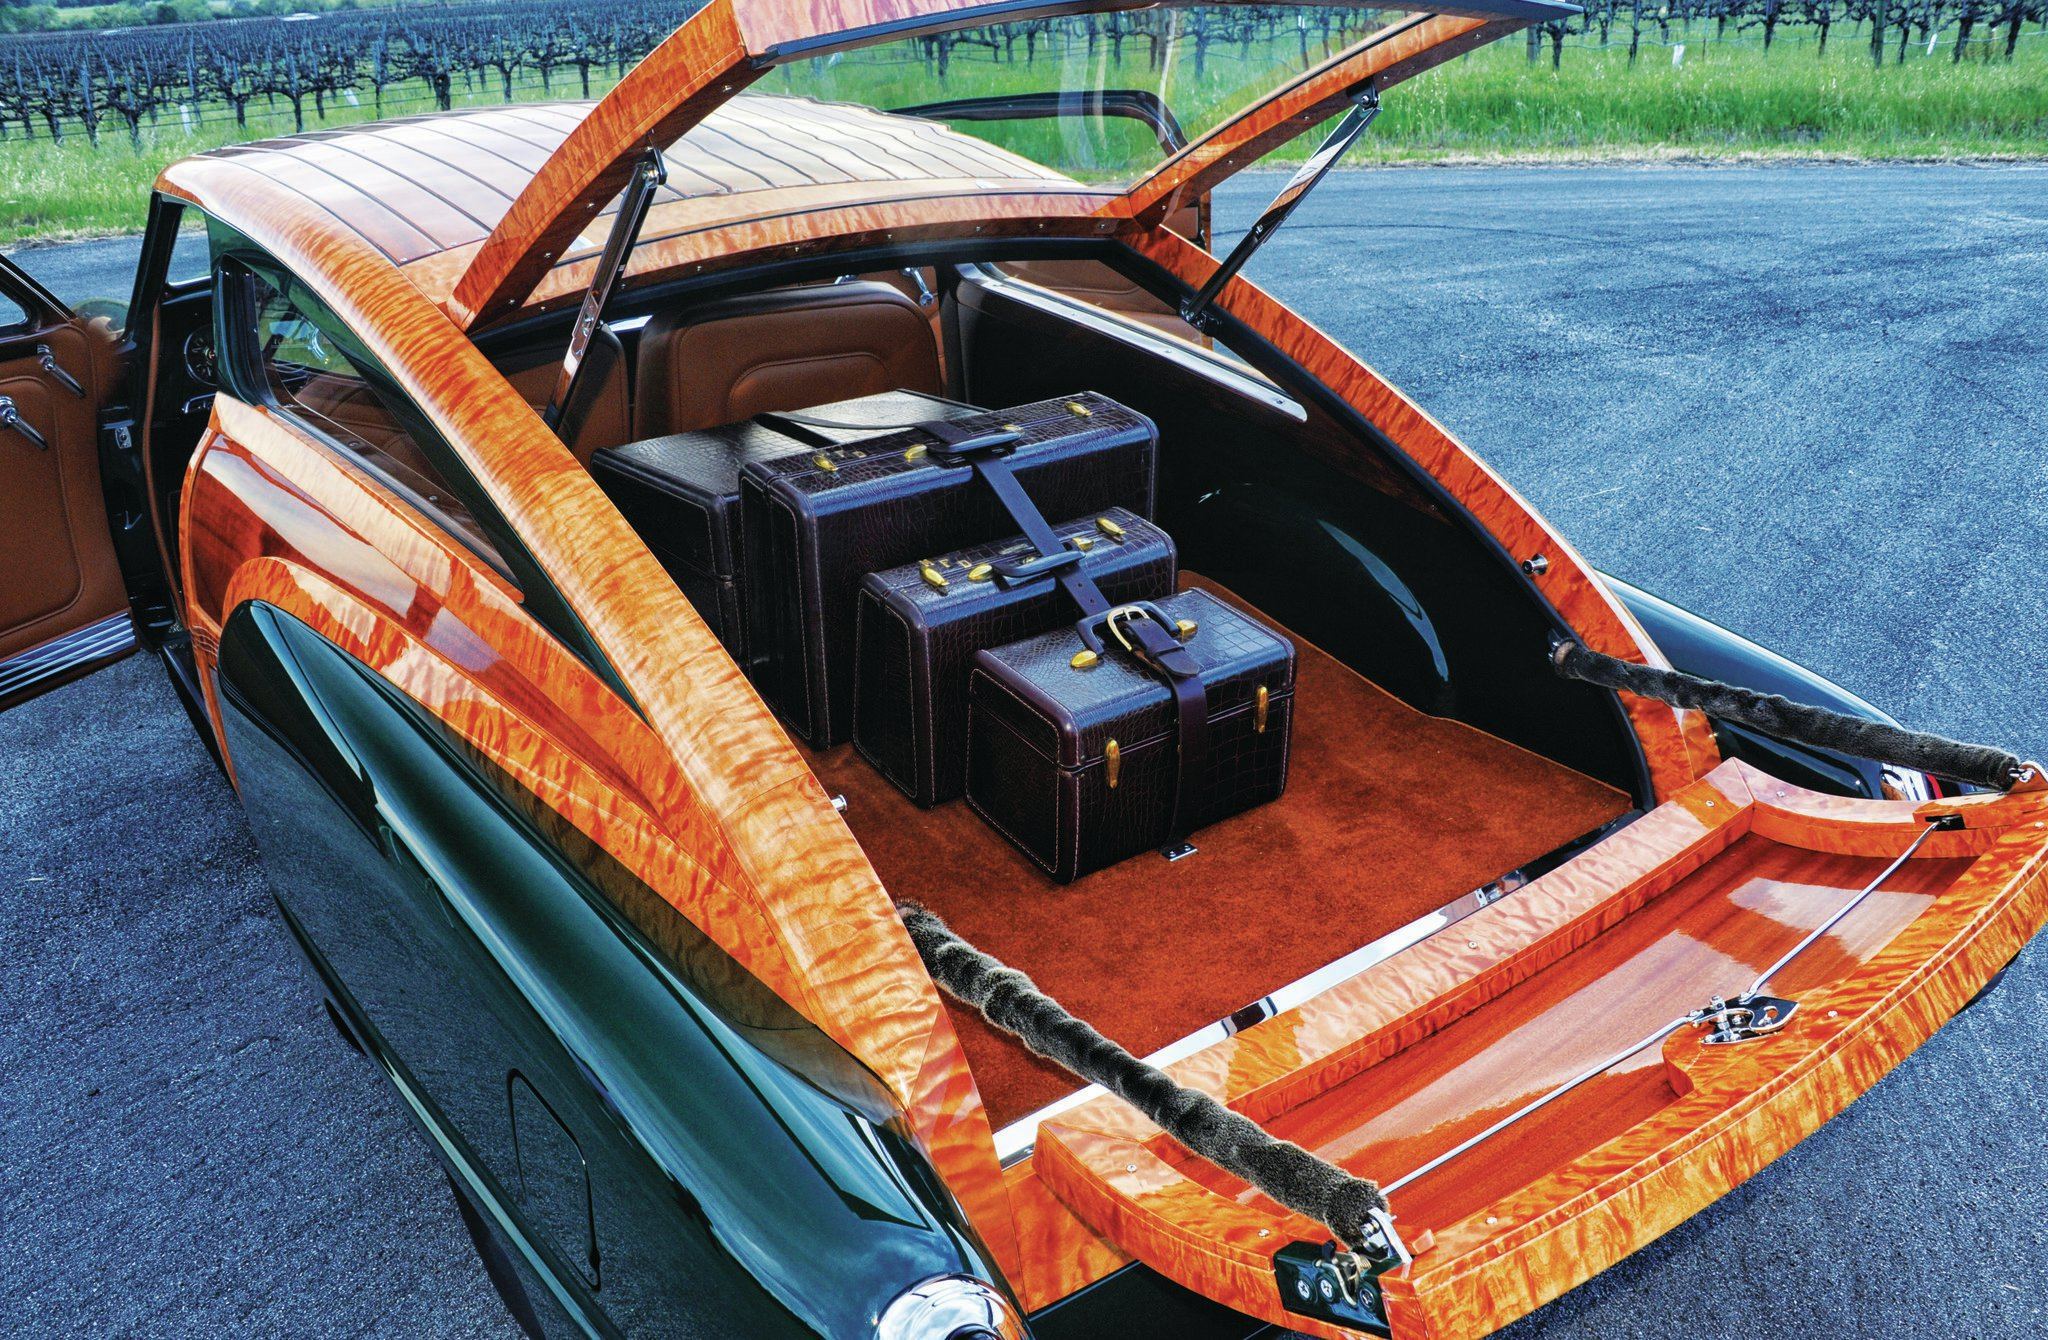 In Dennis' travels, he found this matching set of luggage in an antique store and thought they fit well with the woodie because the car is only a two-seater. Also note the functionality of the liftgate and tailgate, which, along with the painted sheetmetal insides, look factory stock but are not.